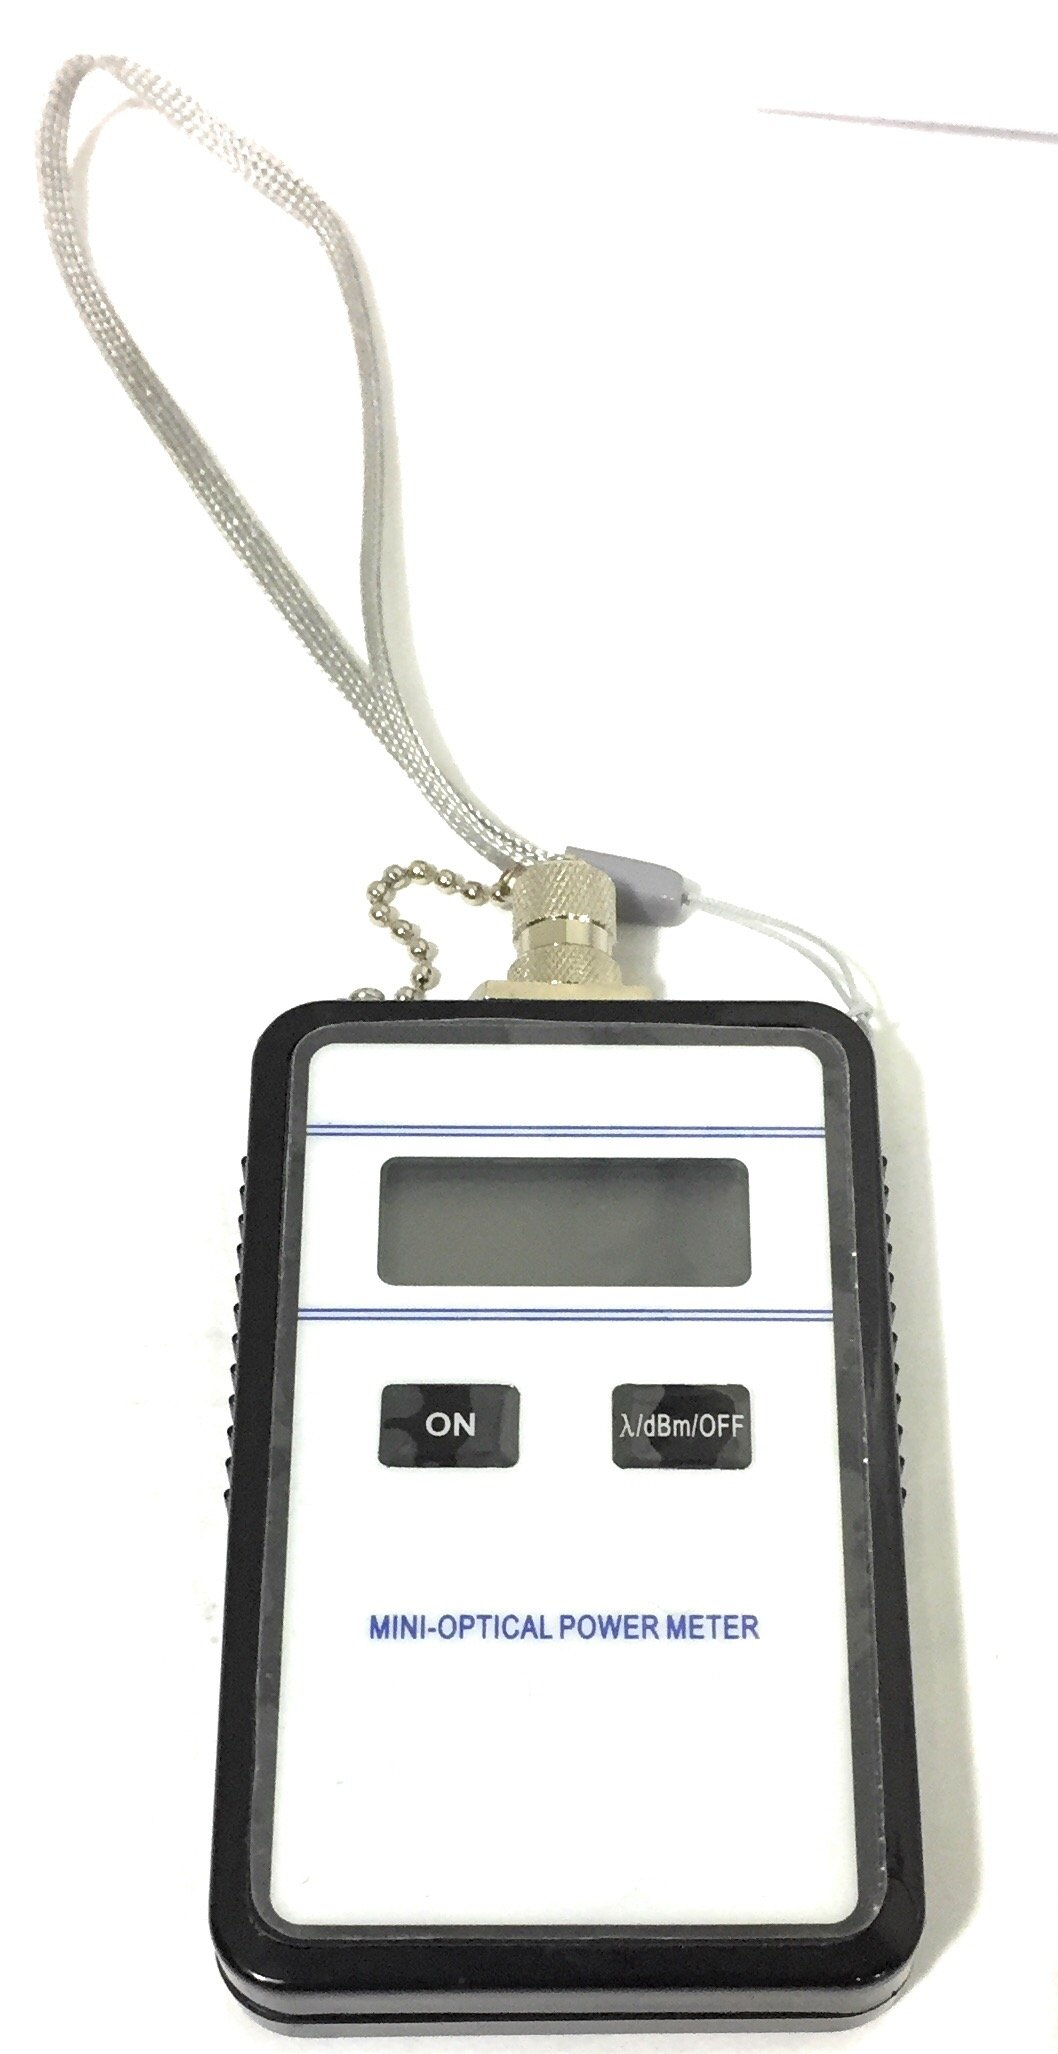 Mini Optical Fiber Optic Power Meter (Model 3205) - Lightweight and Compact - Comes with Protective case and English Instructions